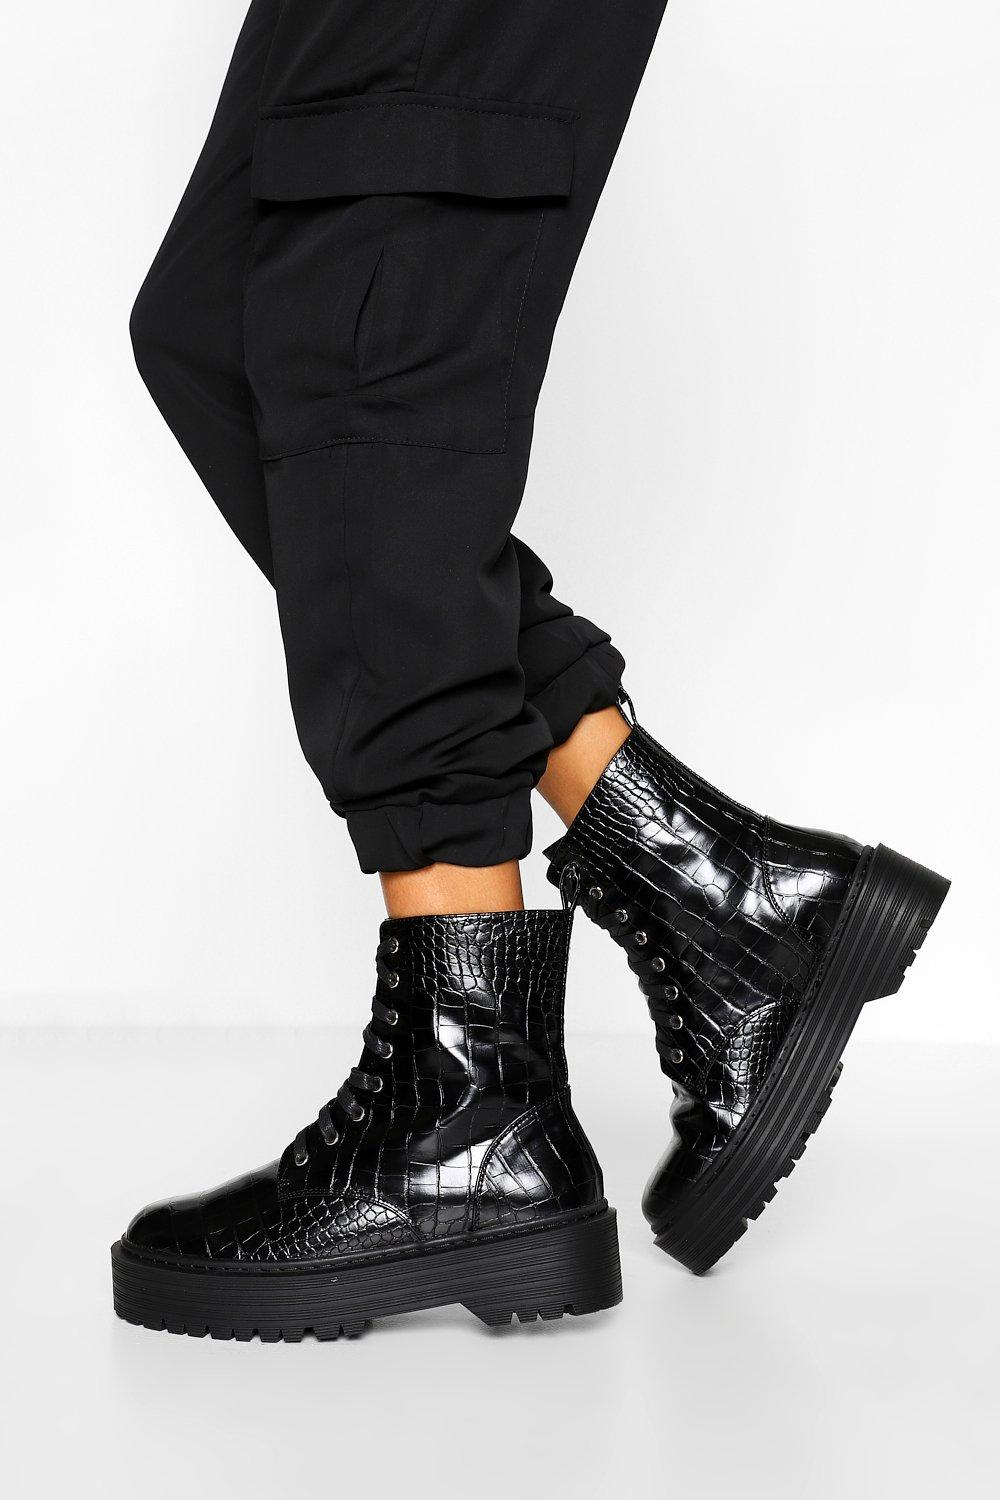 Womens Wide Fit Croc Chunky Hiker Boots - Black - 3